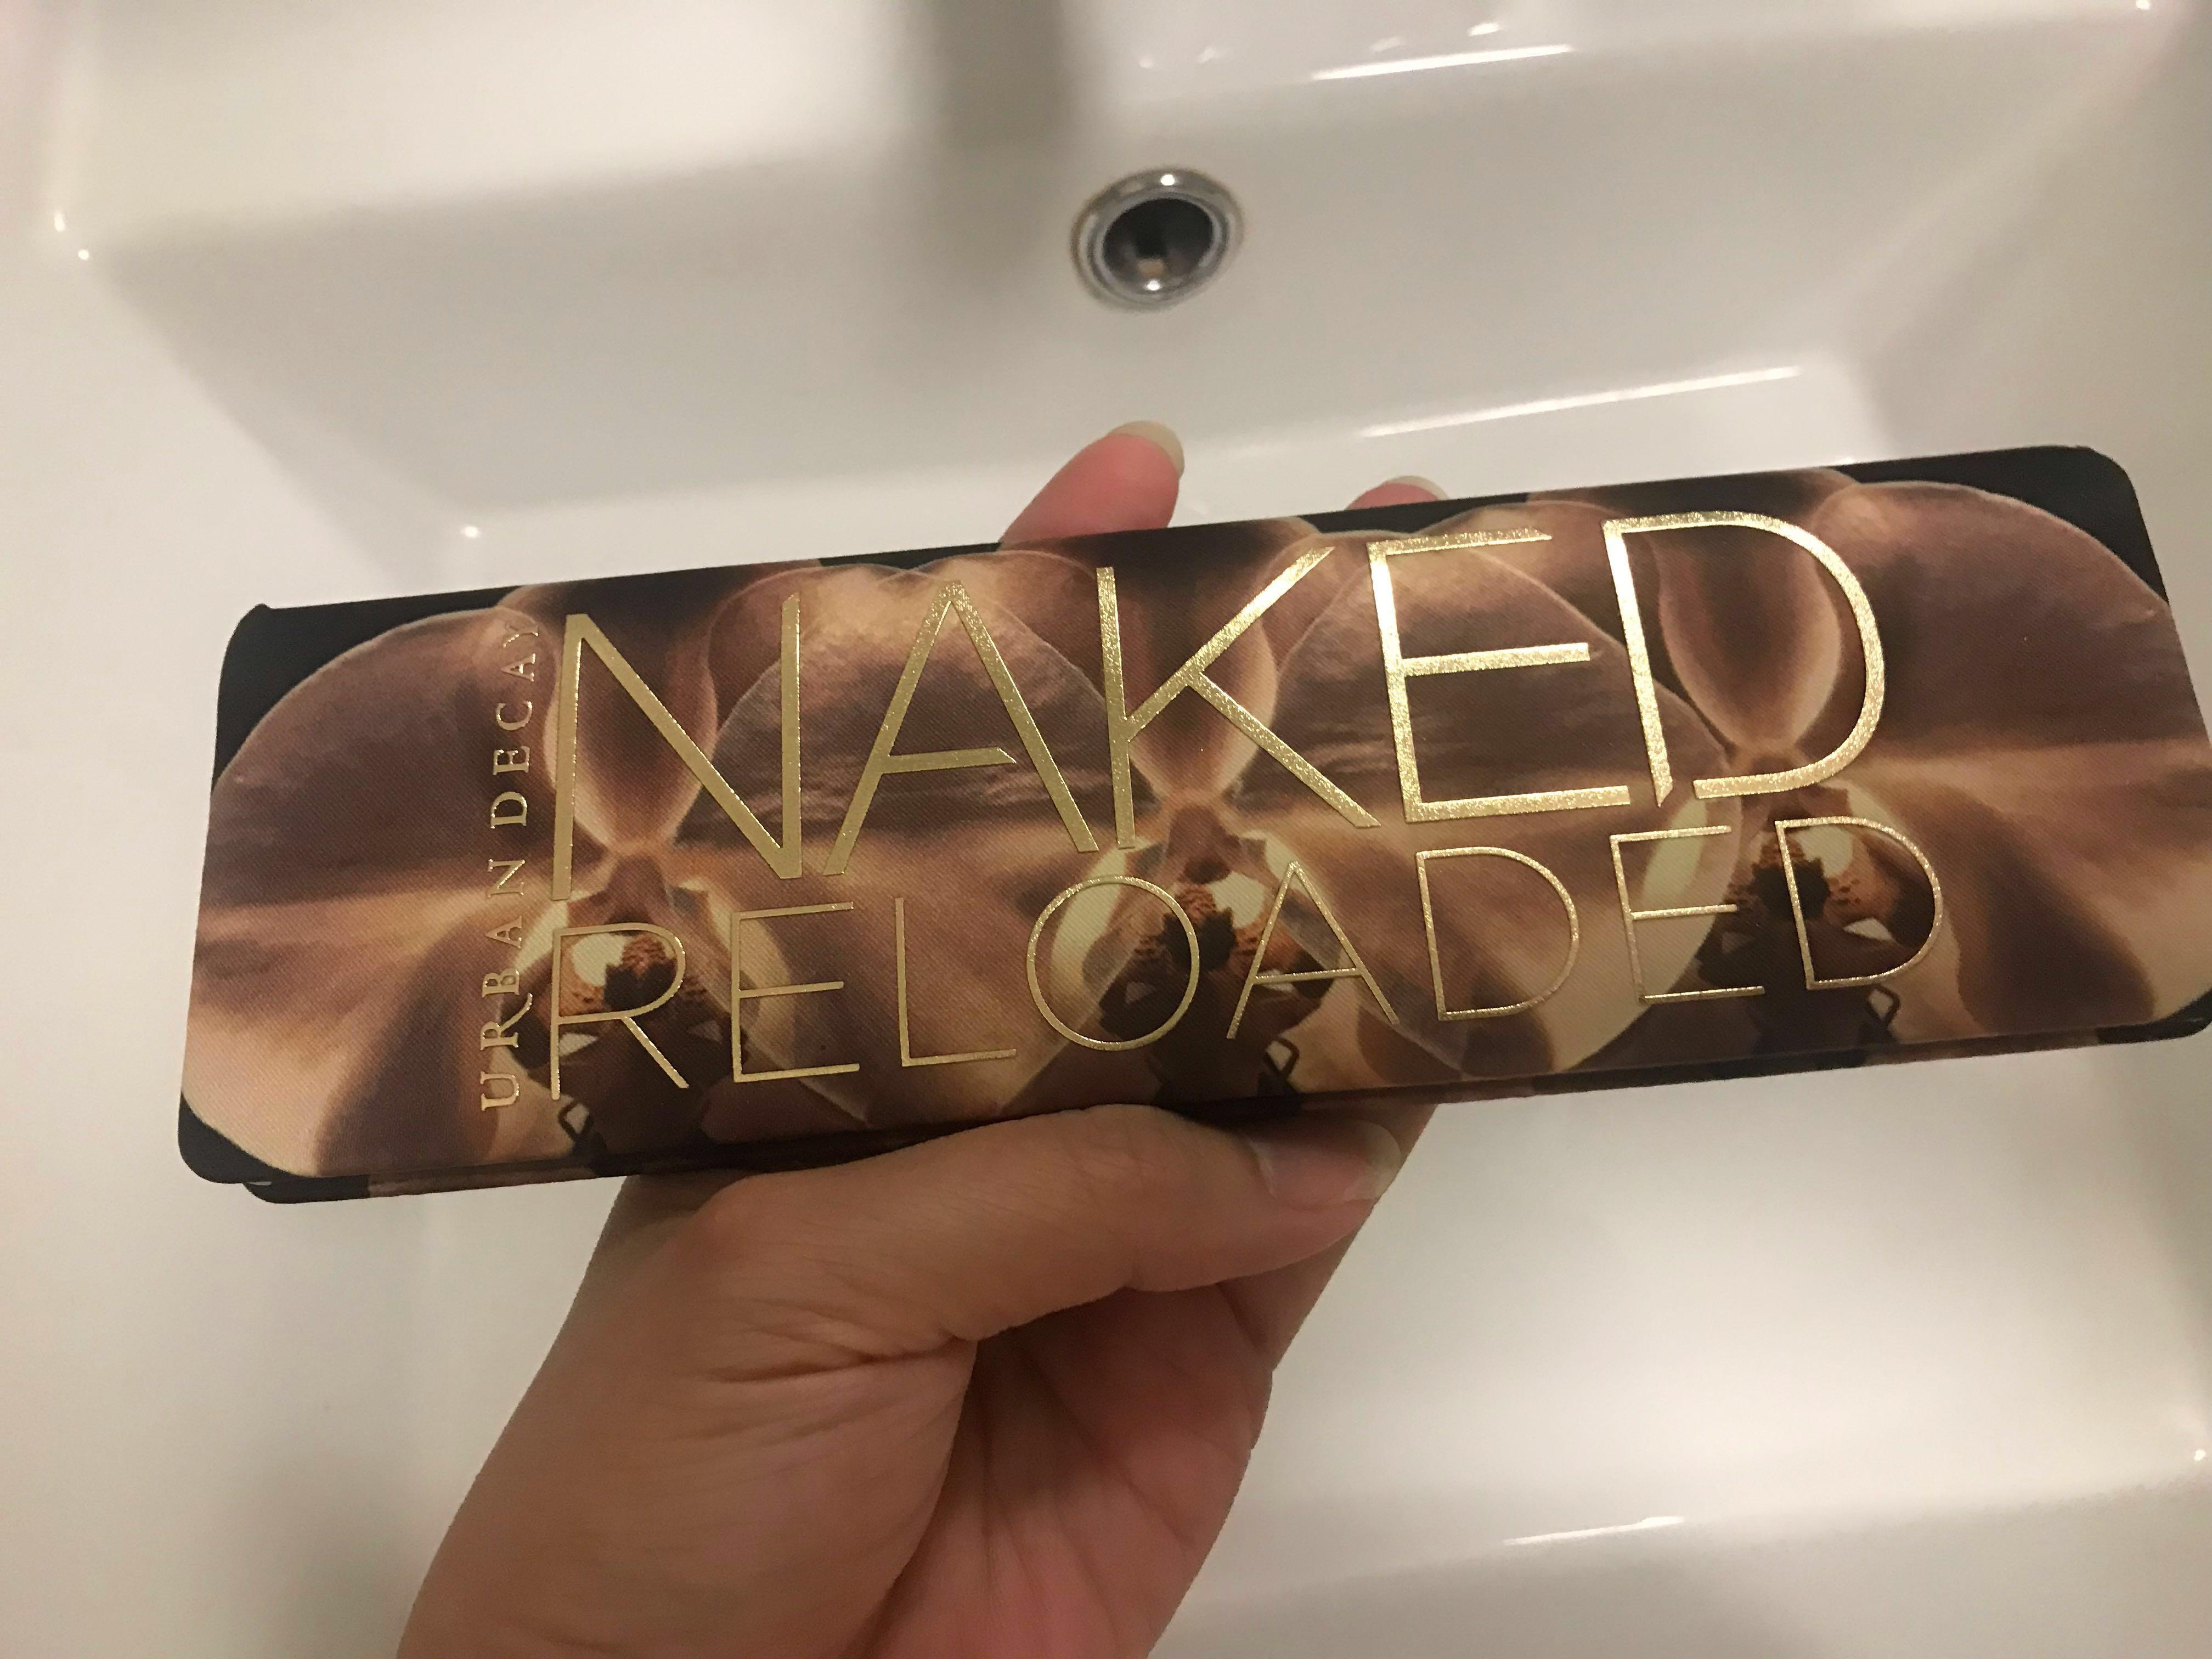 Urban Decay Naked Reloaded eyeshadow palette Authentic